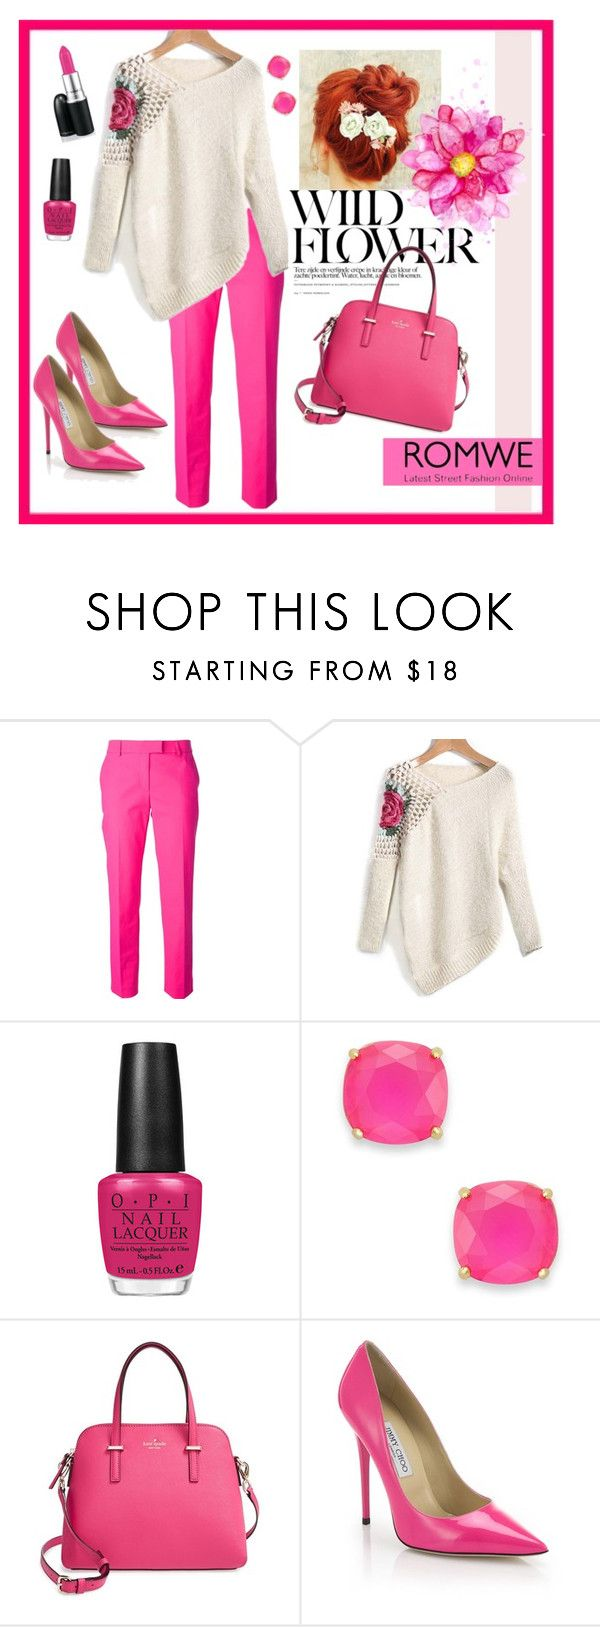 """wild pink flower"" by kimg-phd ❤ liked on Polyvore featuring Moschino Cheap & Chic, OPI, Kate Spade and Jimmy Choo"